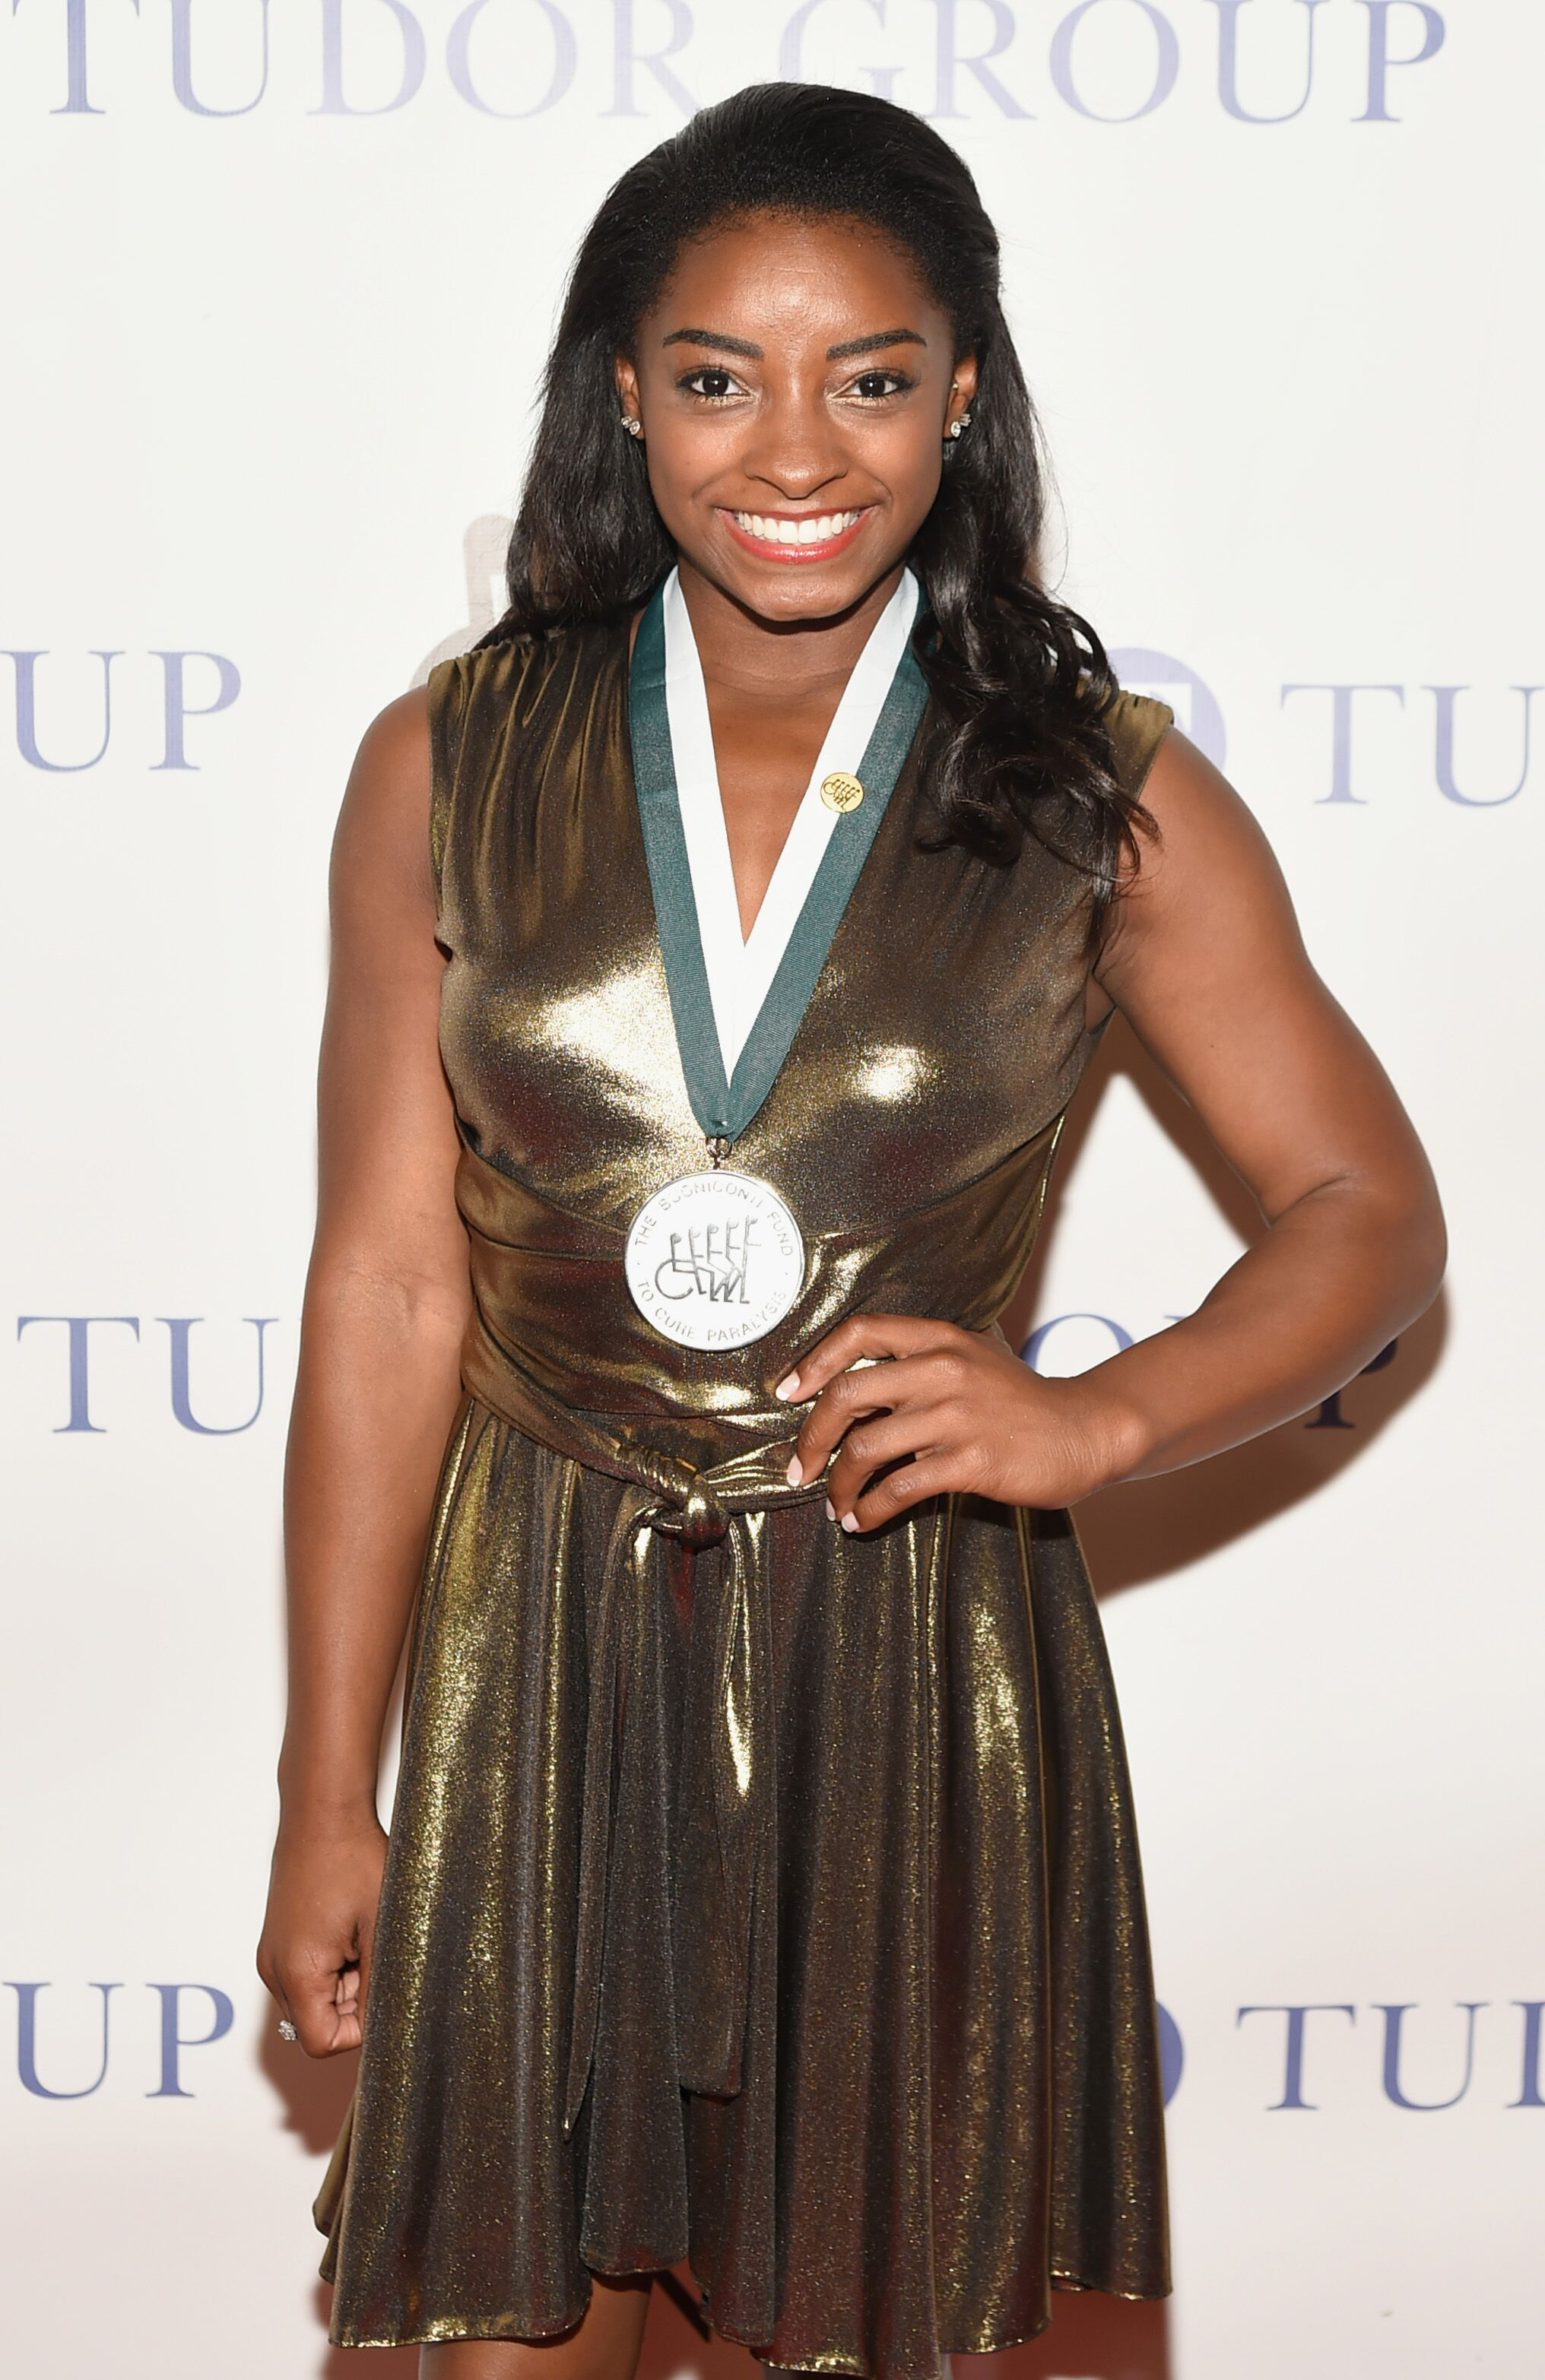 Simone Biles attends the 32nd Annual Great Sports Legends Dinner at New York Hilton Midtown on September 25, 2017 . | Photo: Getty Images